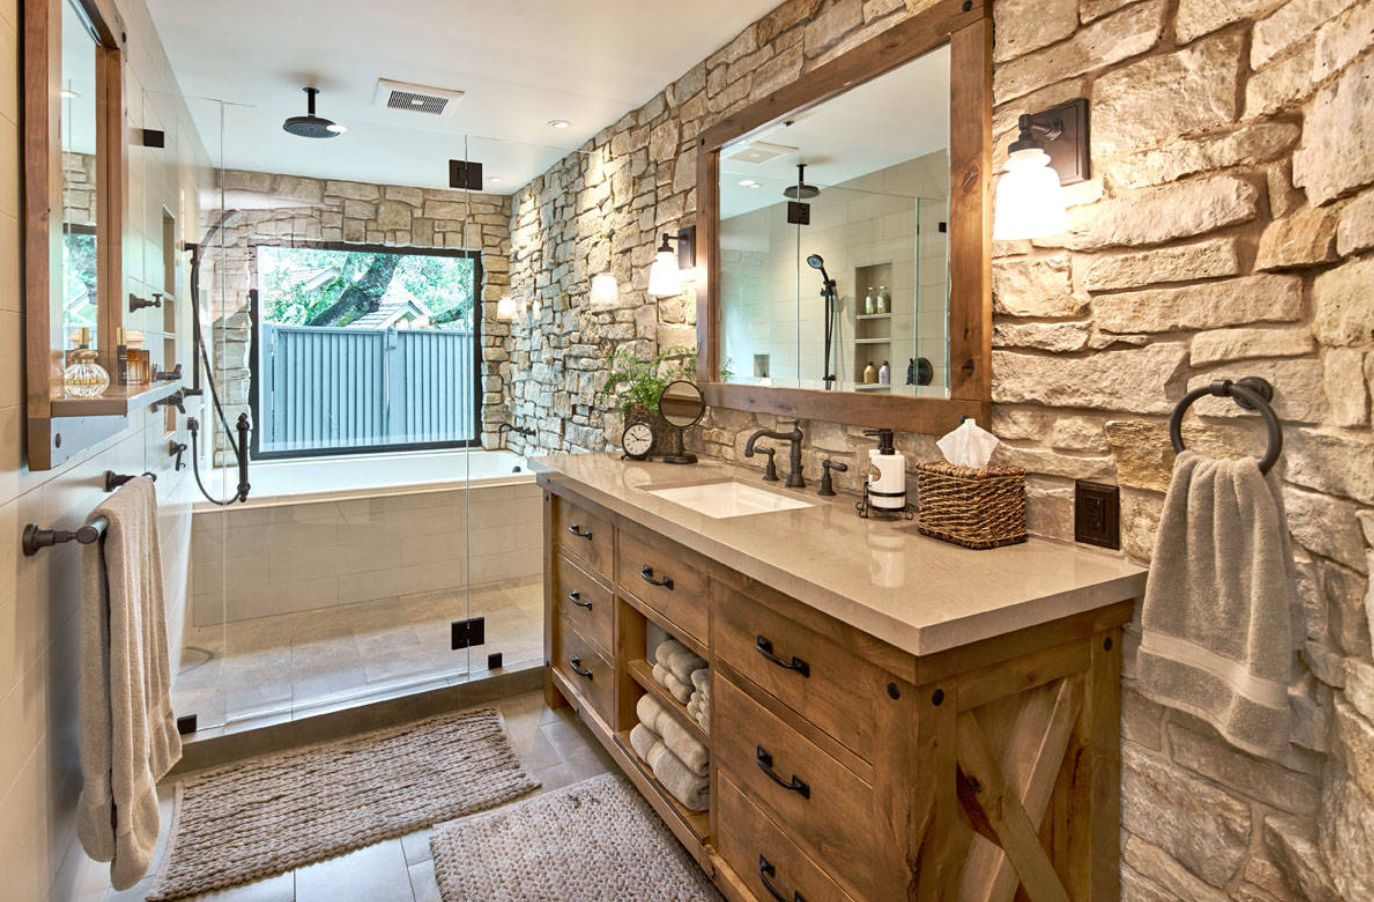 rustic bathroom design ideas rustic bathroom ideas inspired by nature s beauty 2516